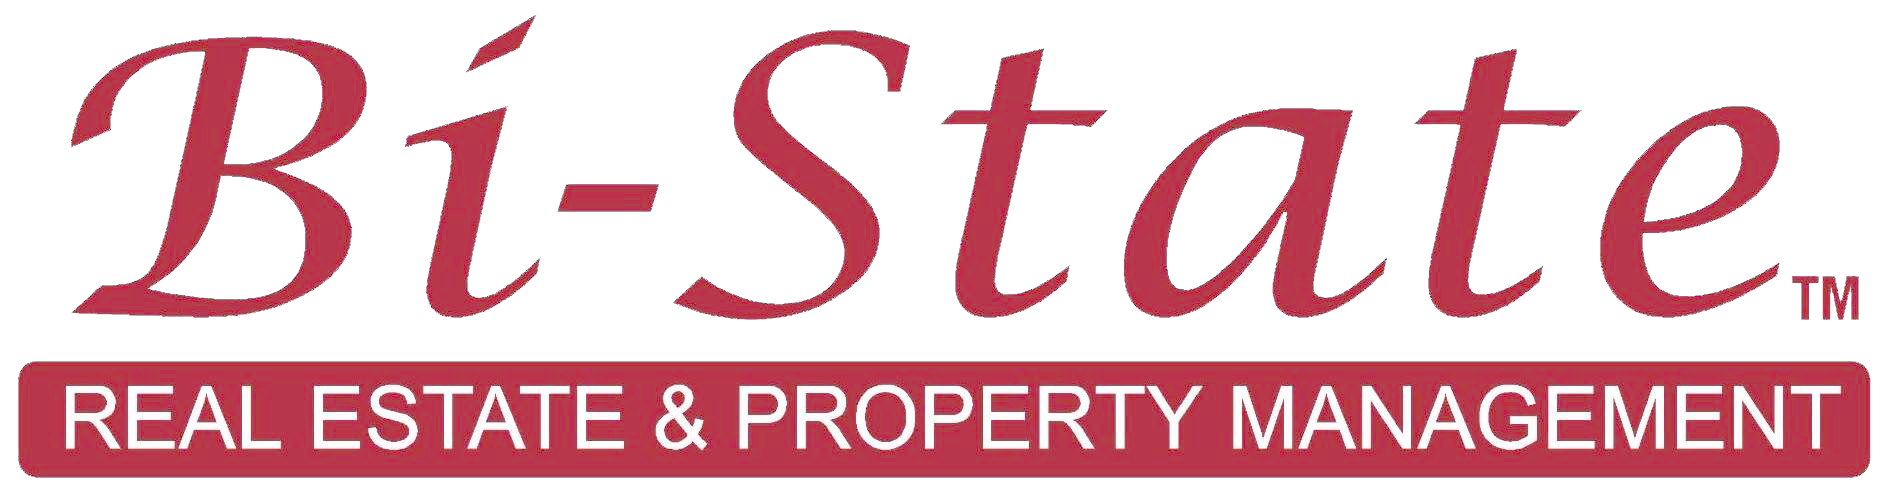 Bi-State Real Estate & Property Management